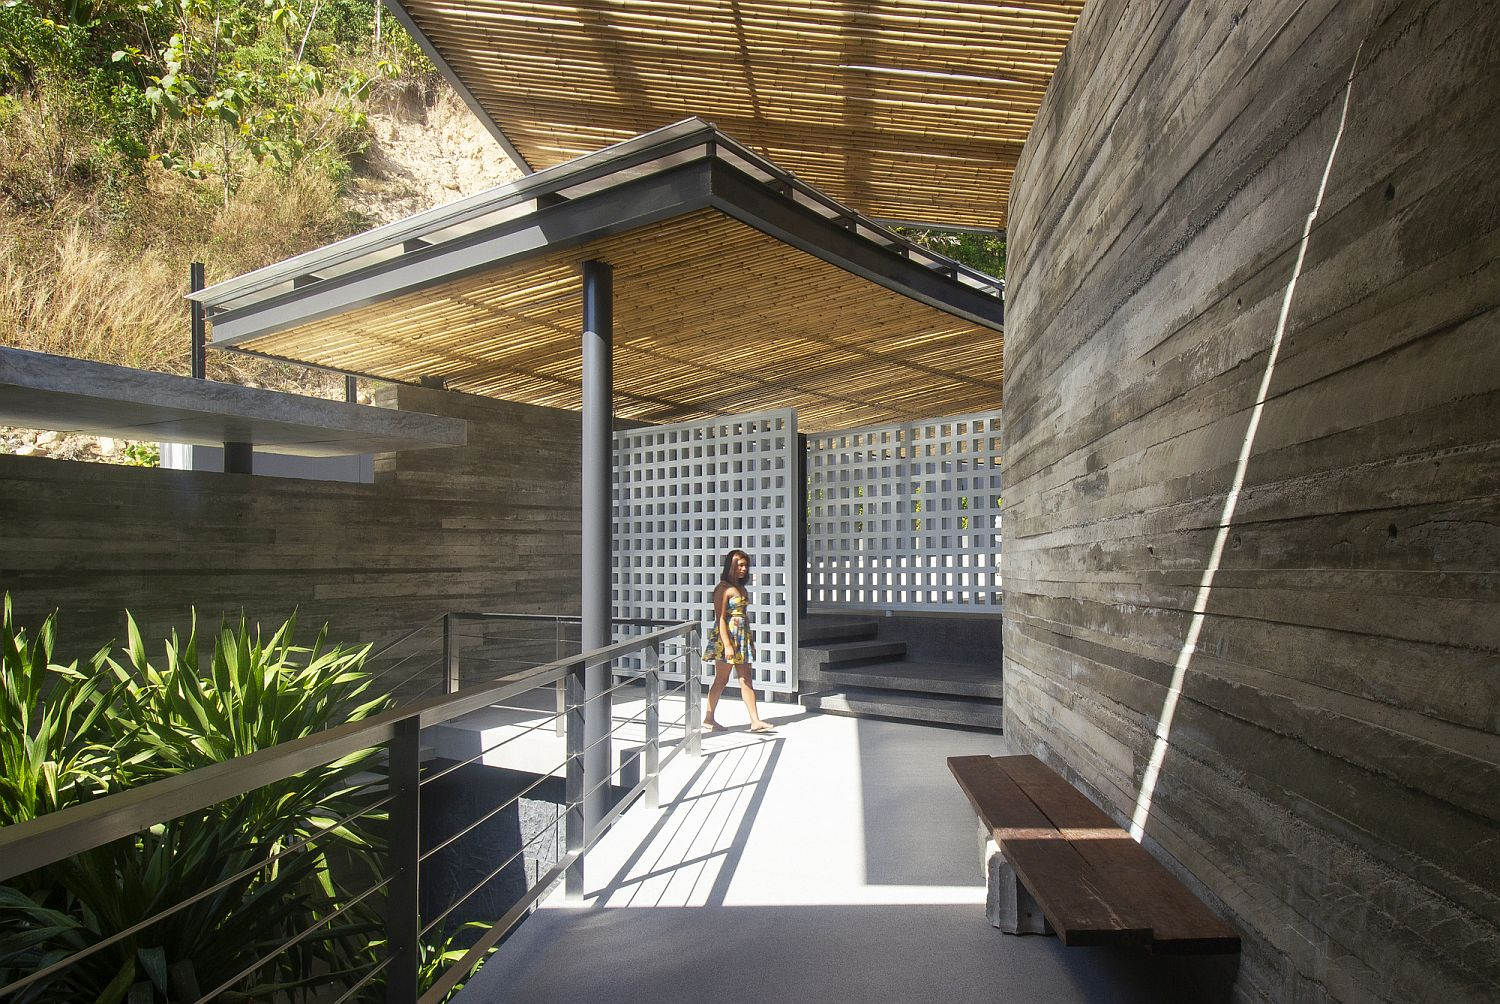 Bamboo screens offer ample shade throughout the house and keep away tropical sun